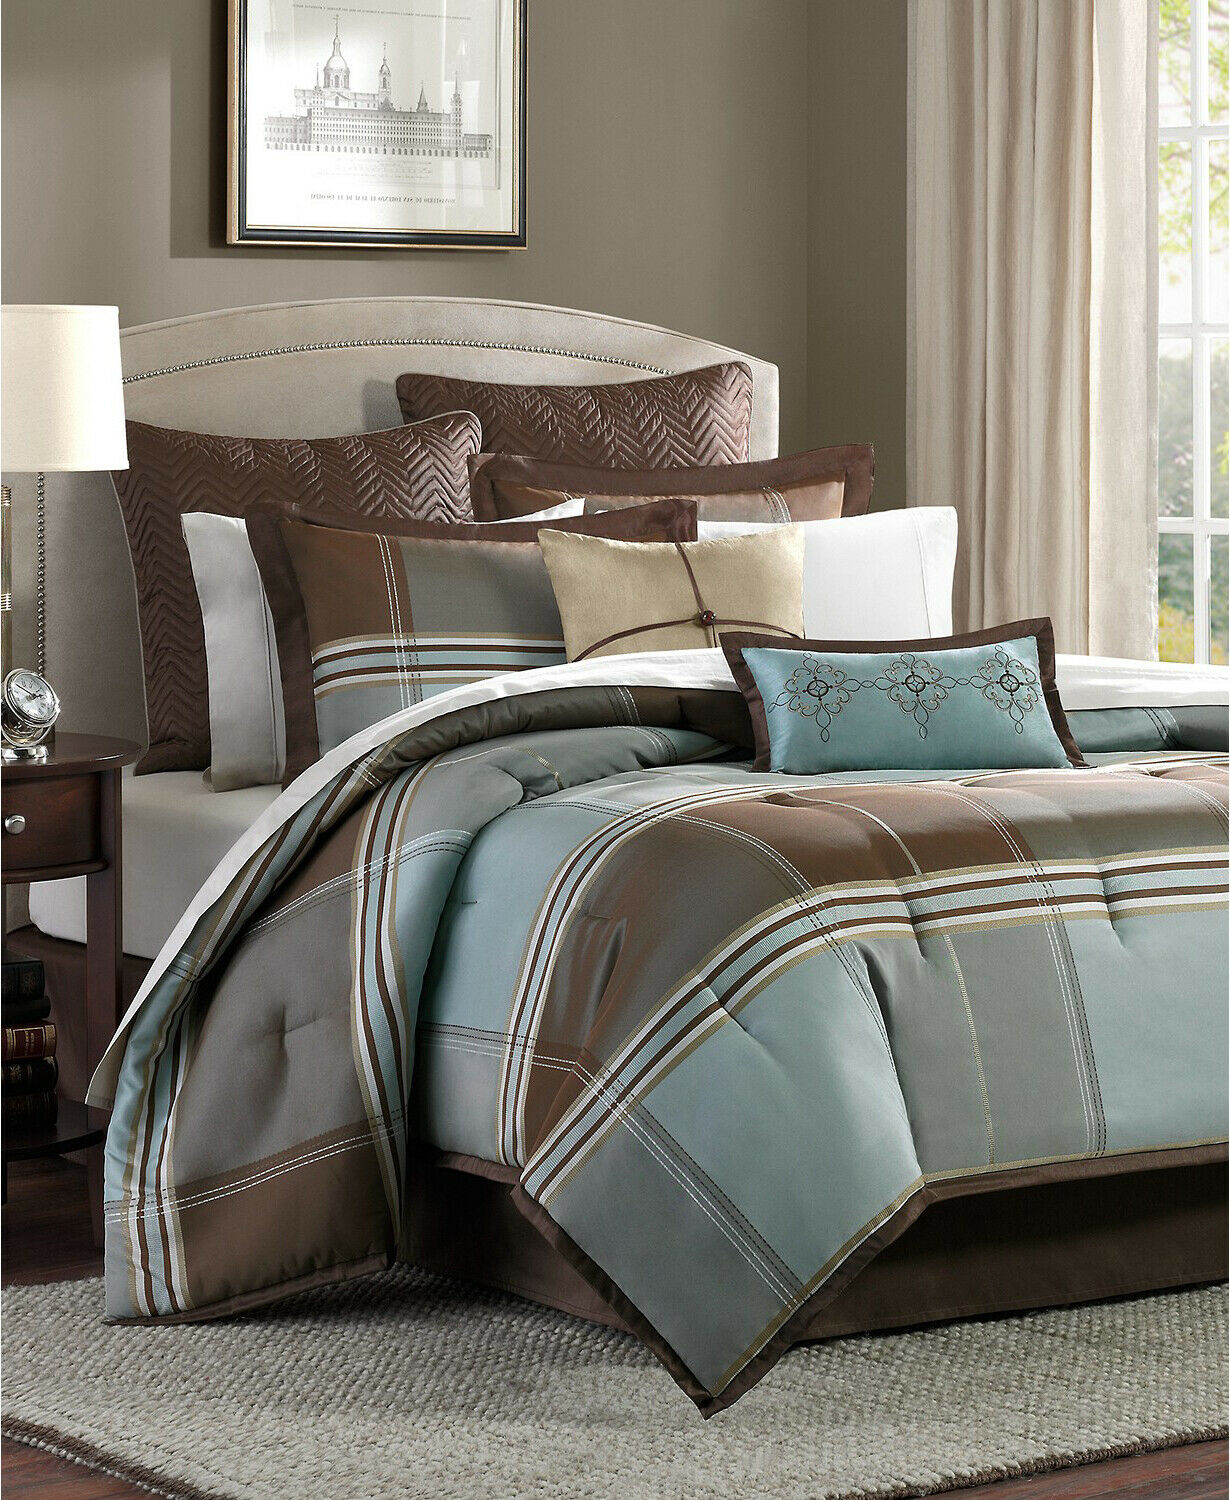 Lincoln Square 8pc King Size Reversible Comforter Set, Brown & Light bluee Plaid